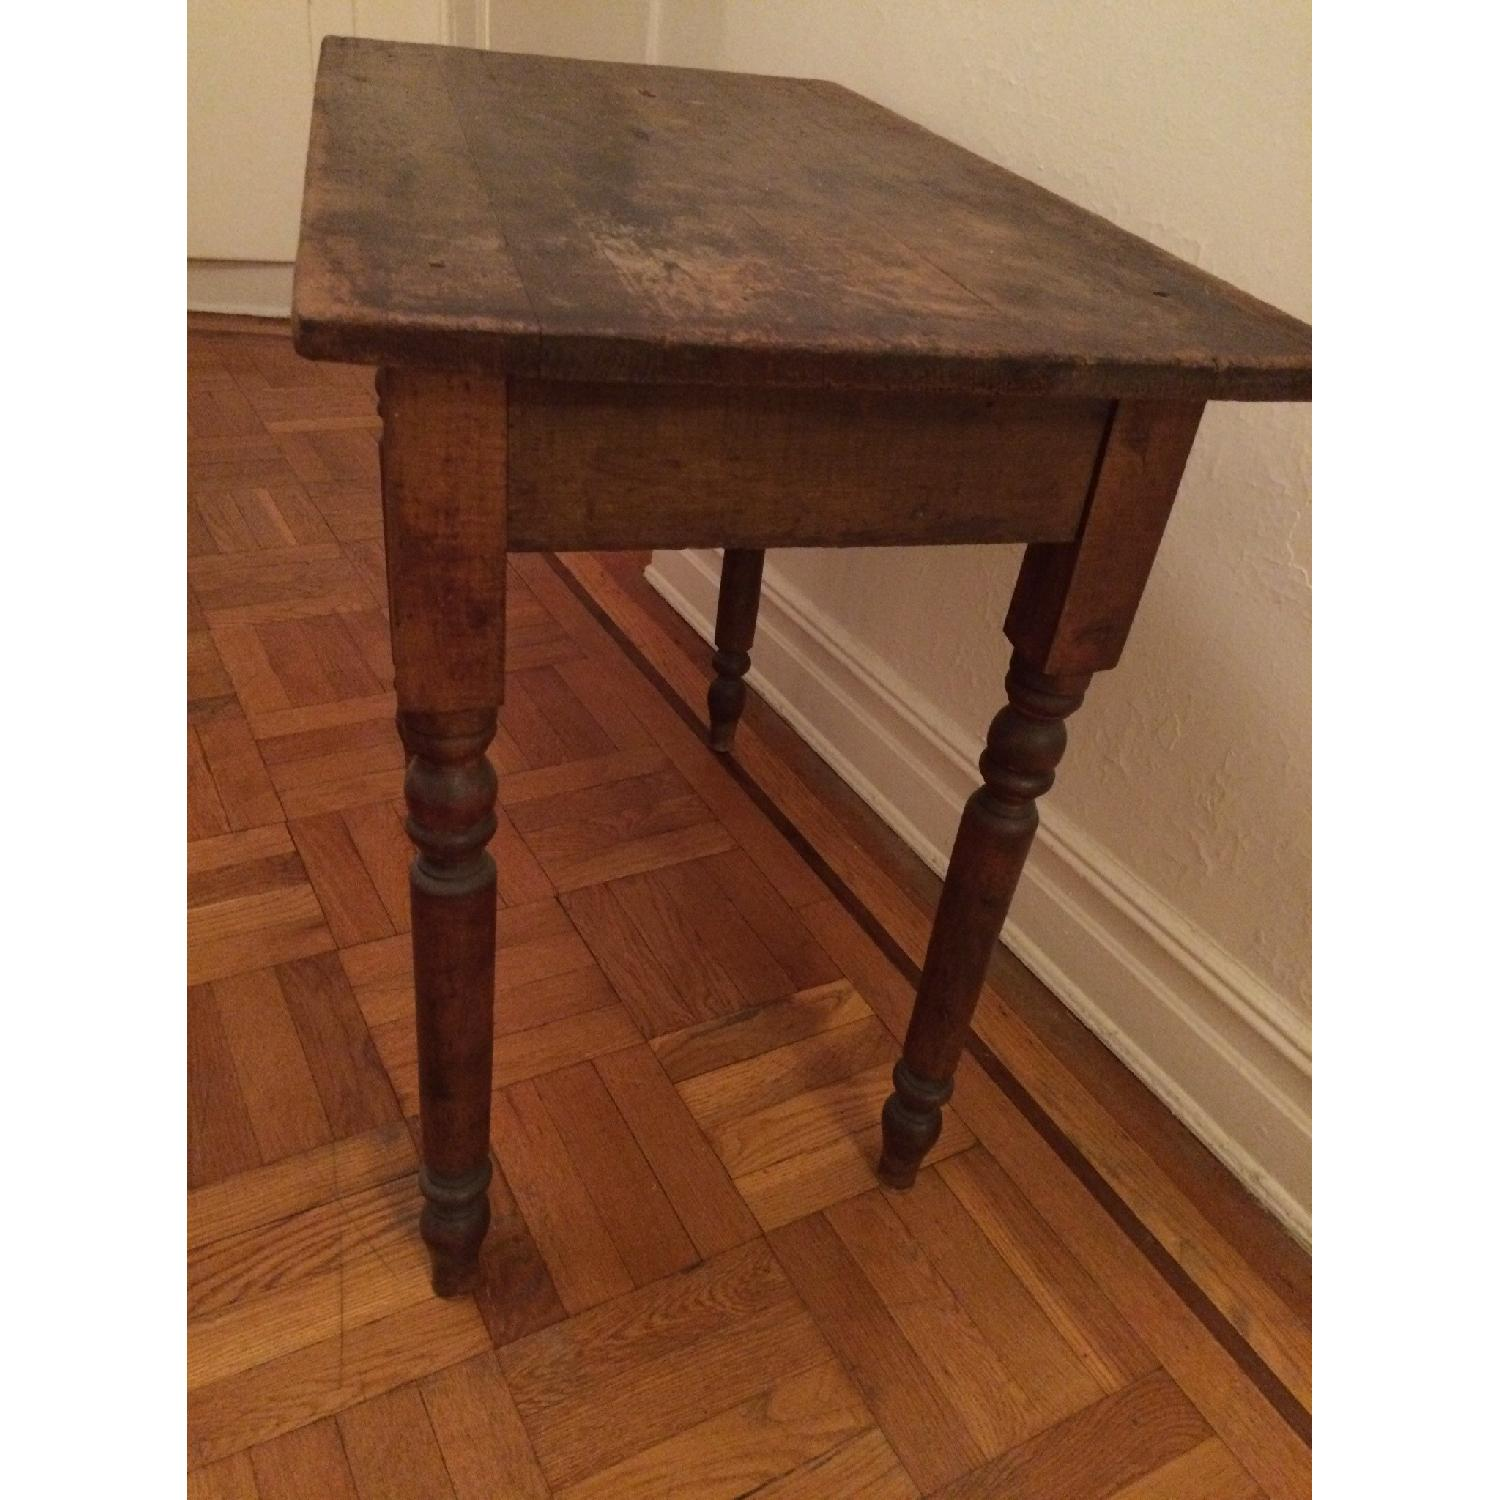 Antique Small Rustic Table - image-2